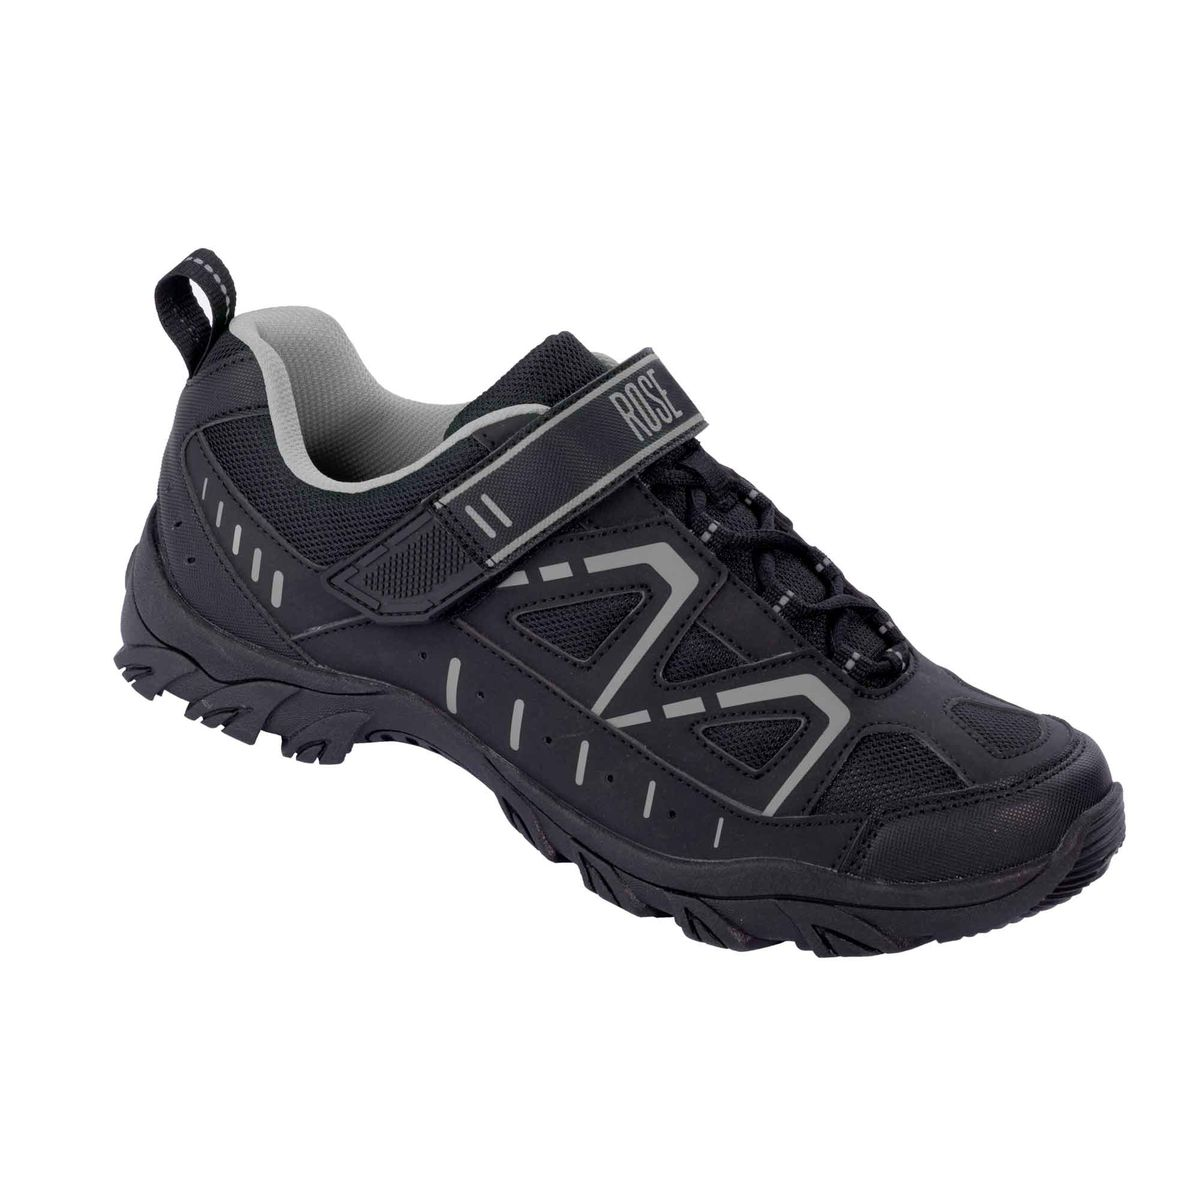 RTS 06 MTB-/trekking shoes